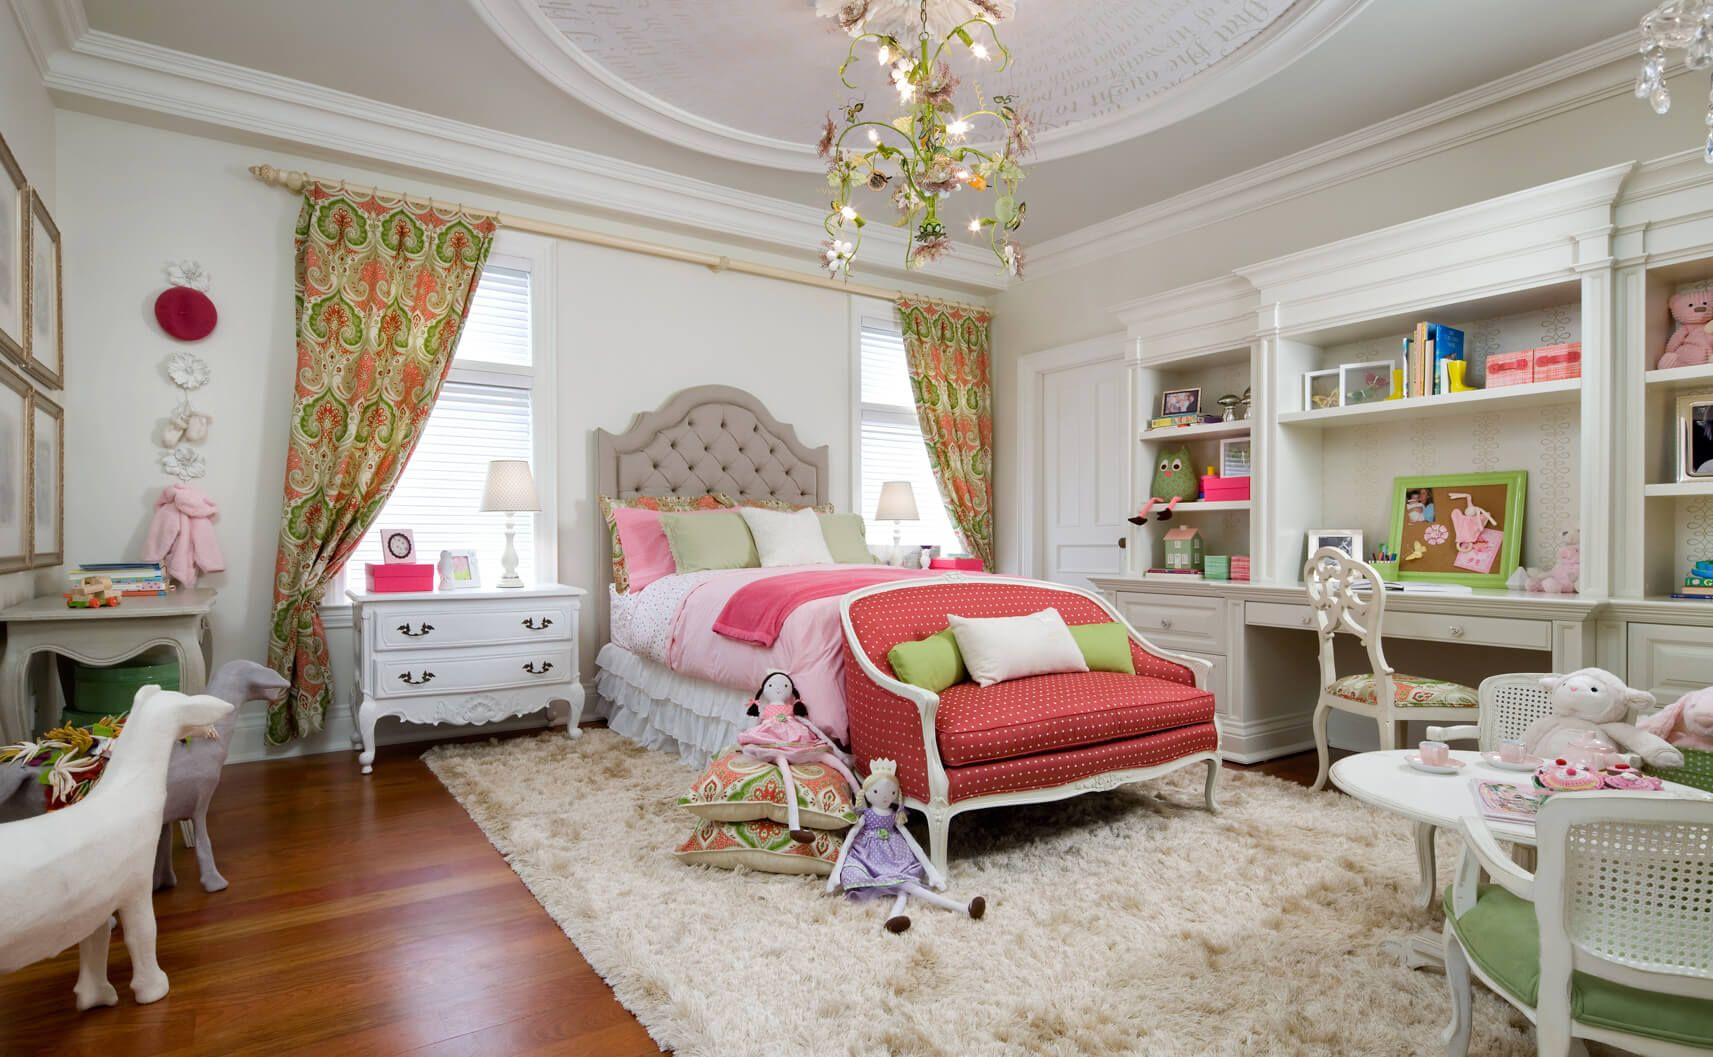 Candice Olson Bedroom Designs Delectable Resplendent Little Girl's Roomcandice Olson Design And Brandon Design Ideas